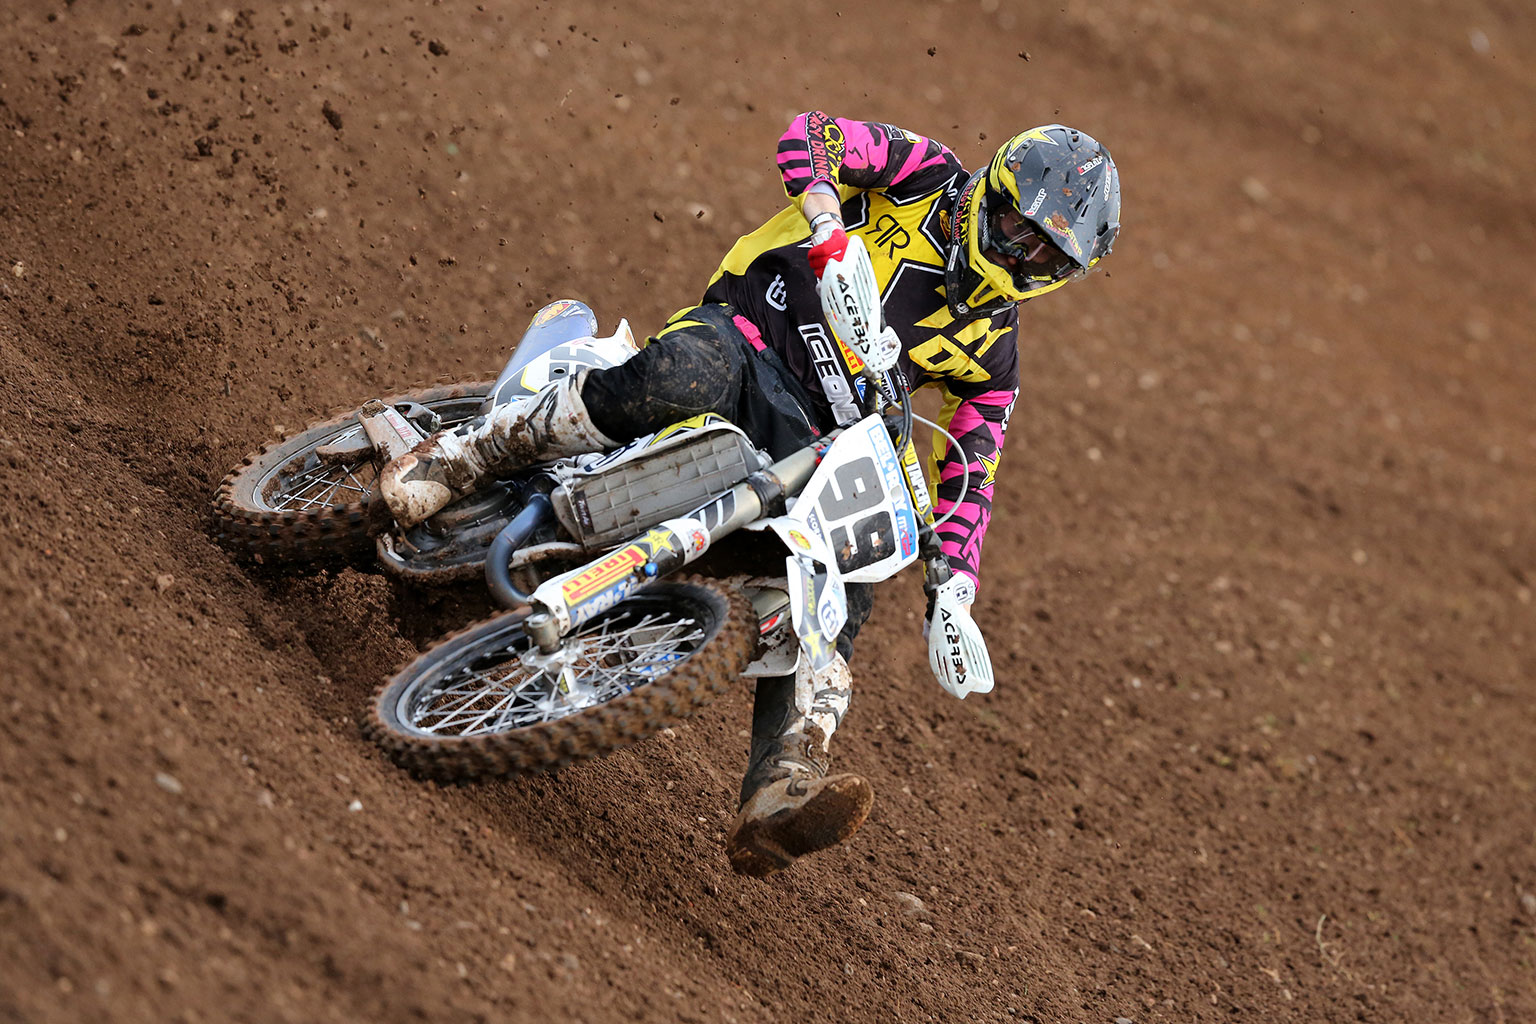 Anstie had a solid day